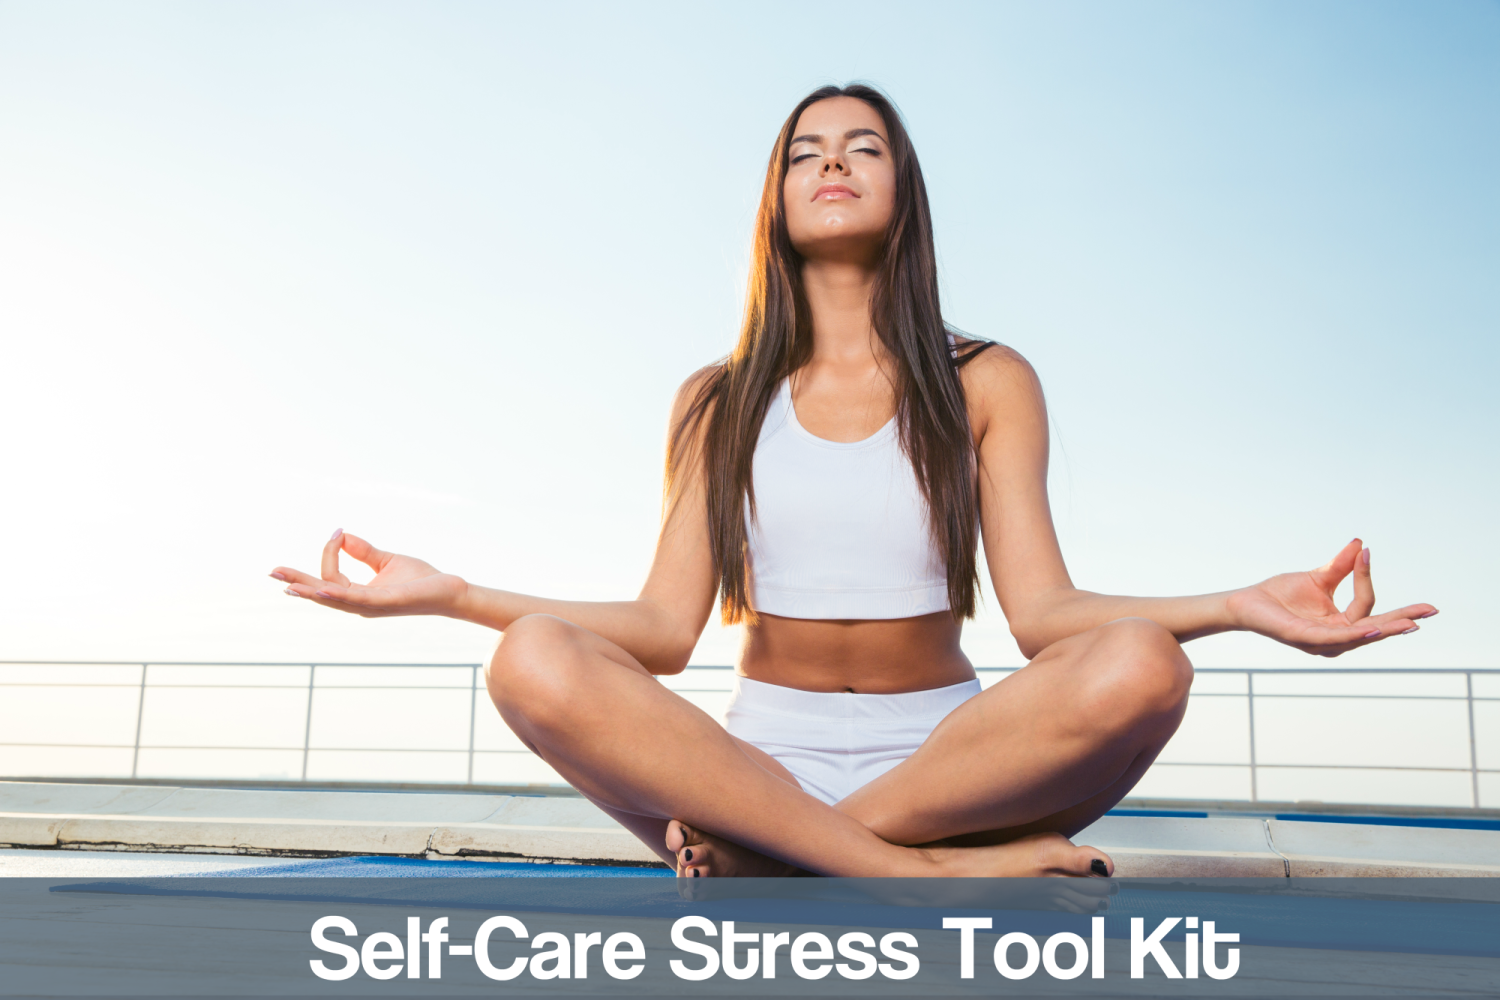 Ninja stress busting tips and tools to help you master your stress and  get back in control. http://www.prnd2l.co/new-self-care-stress-tool-kit/